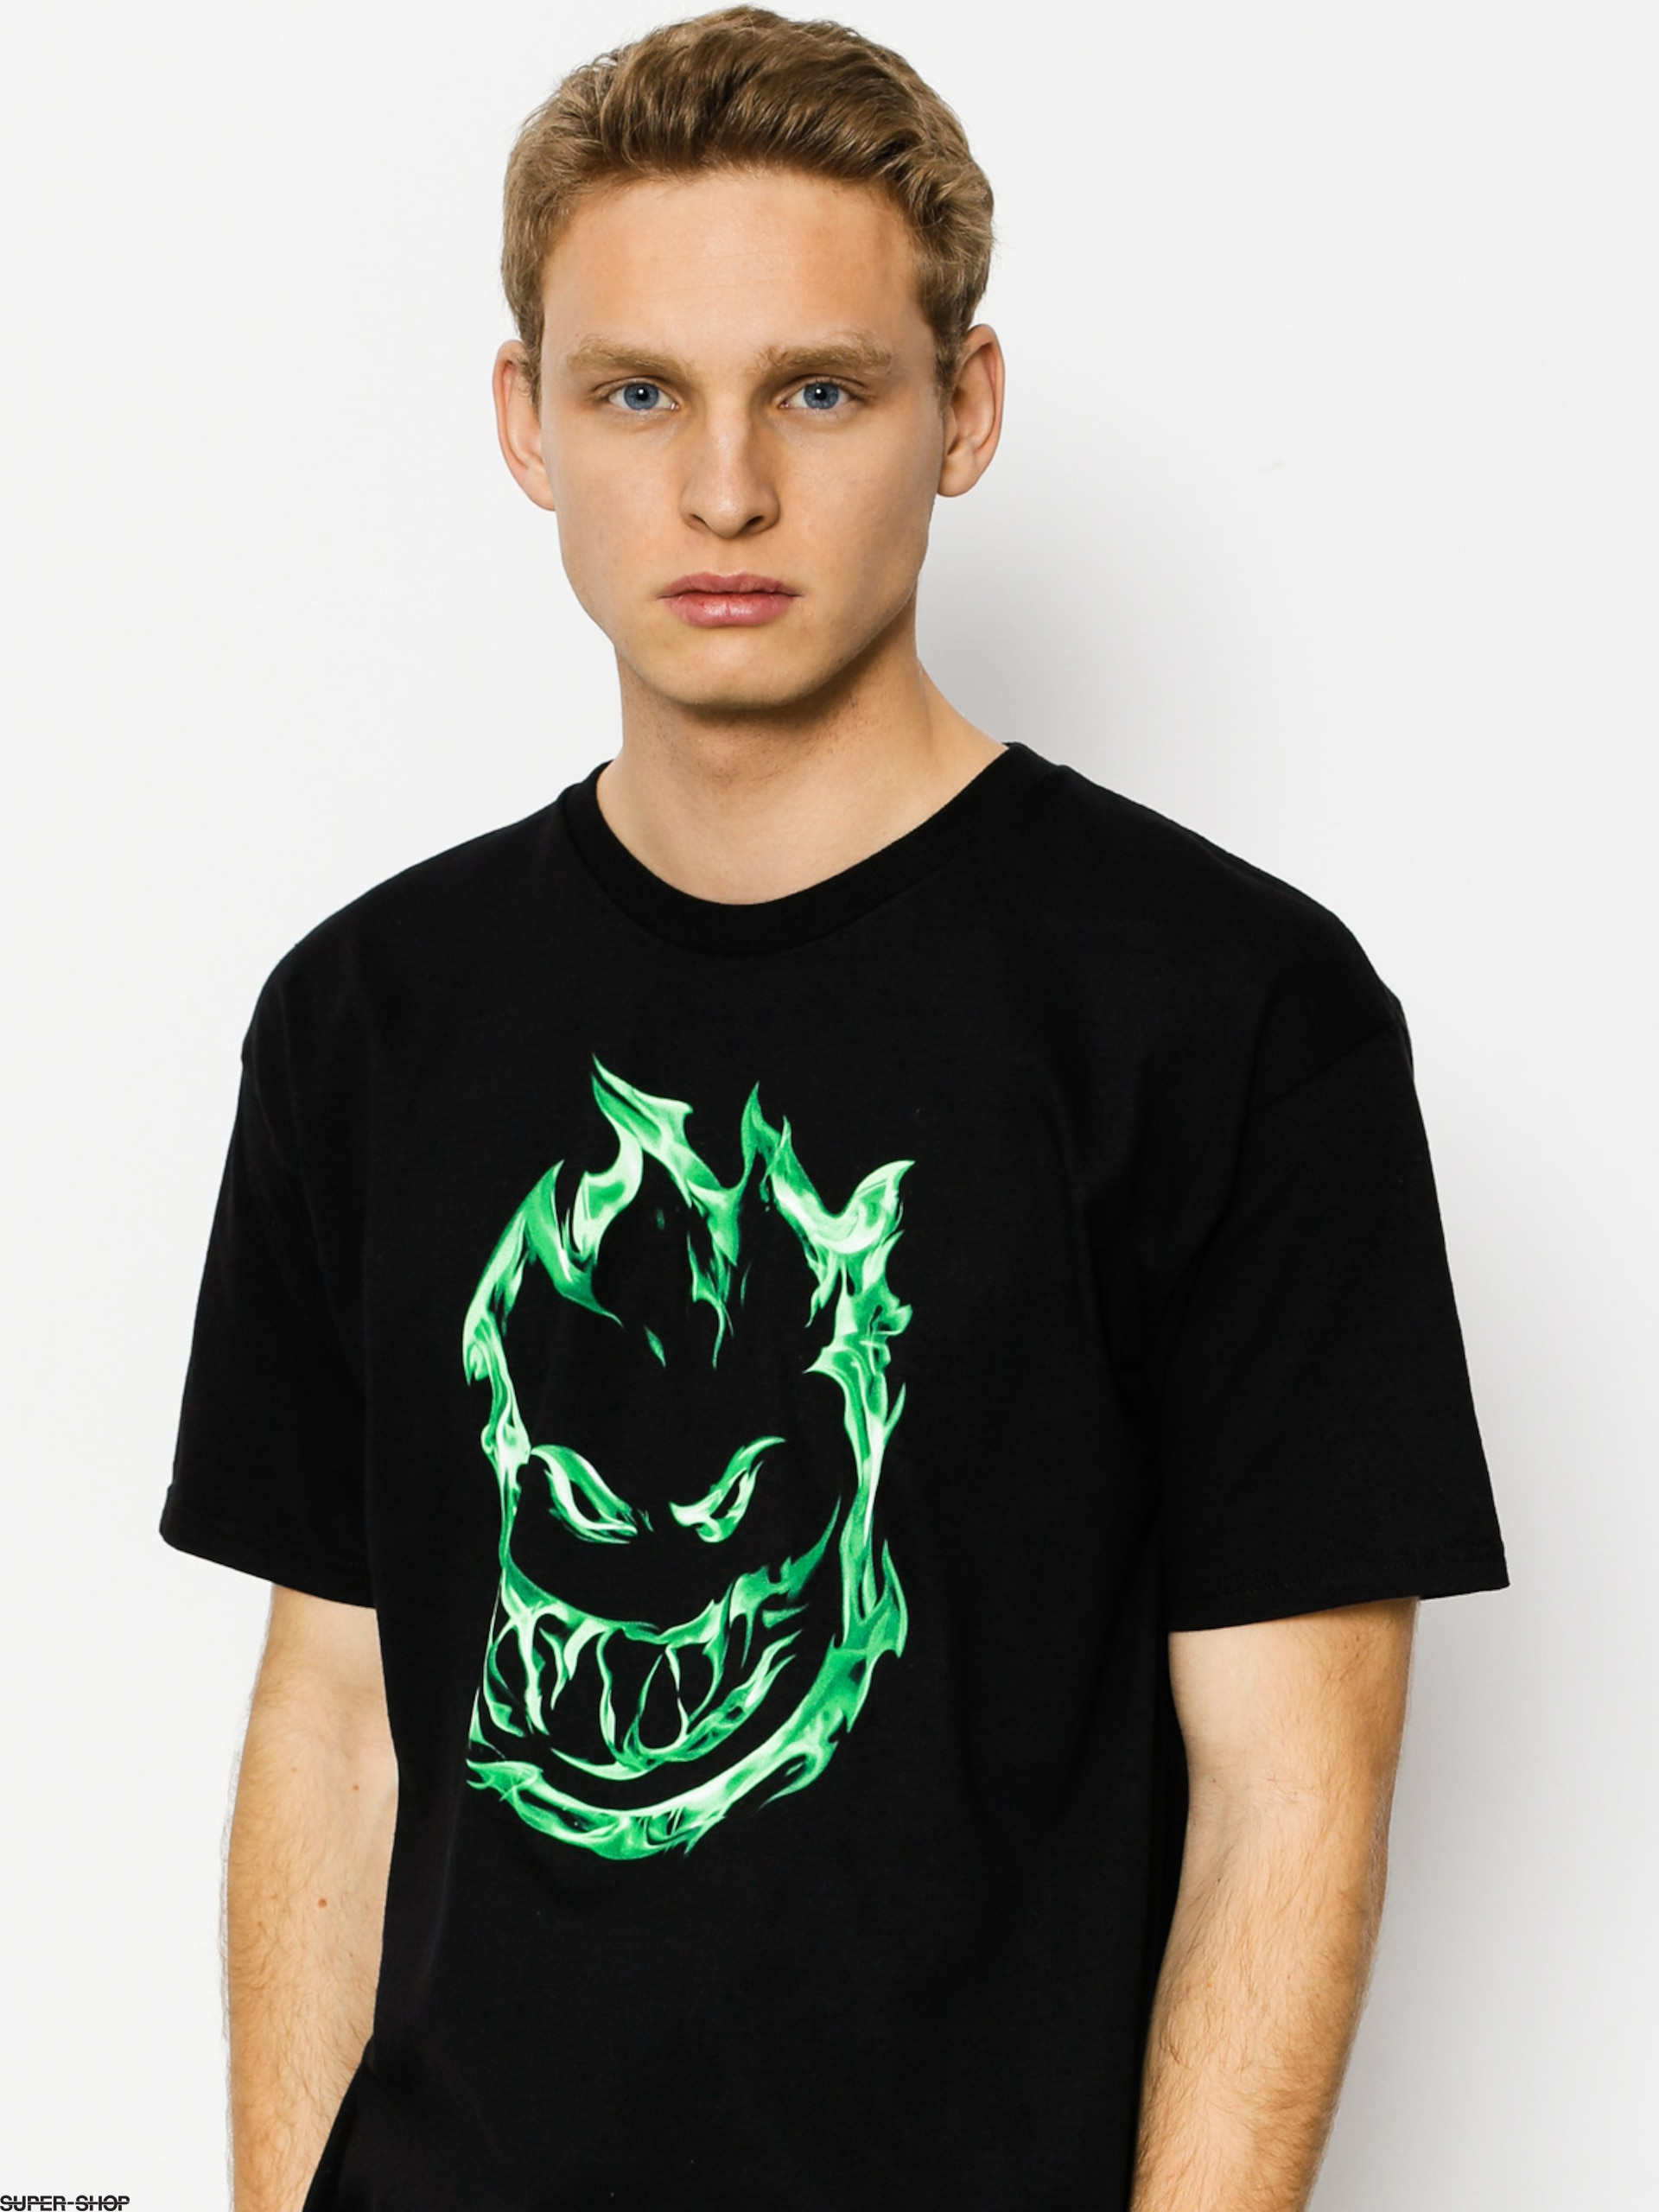 Spitfire T-shirt 451 (black/green)